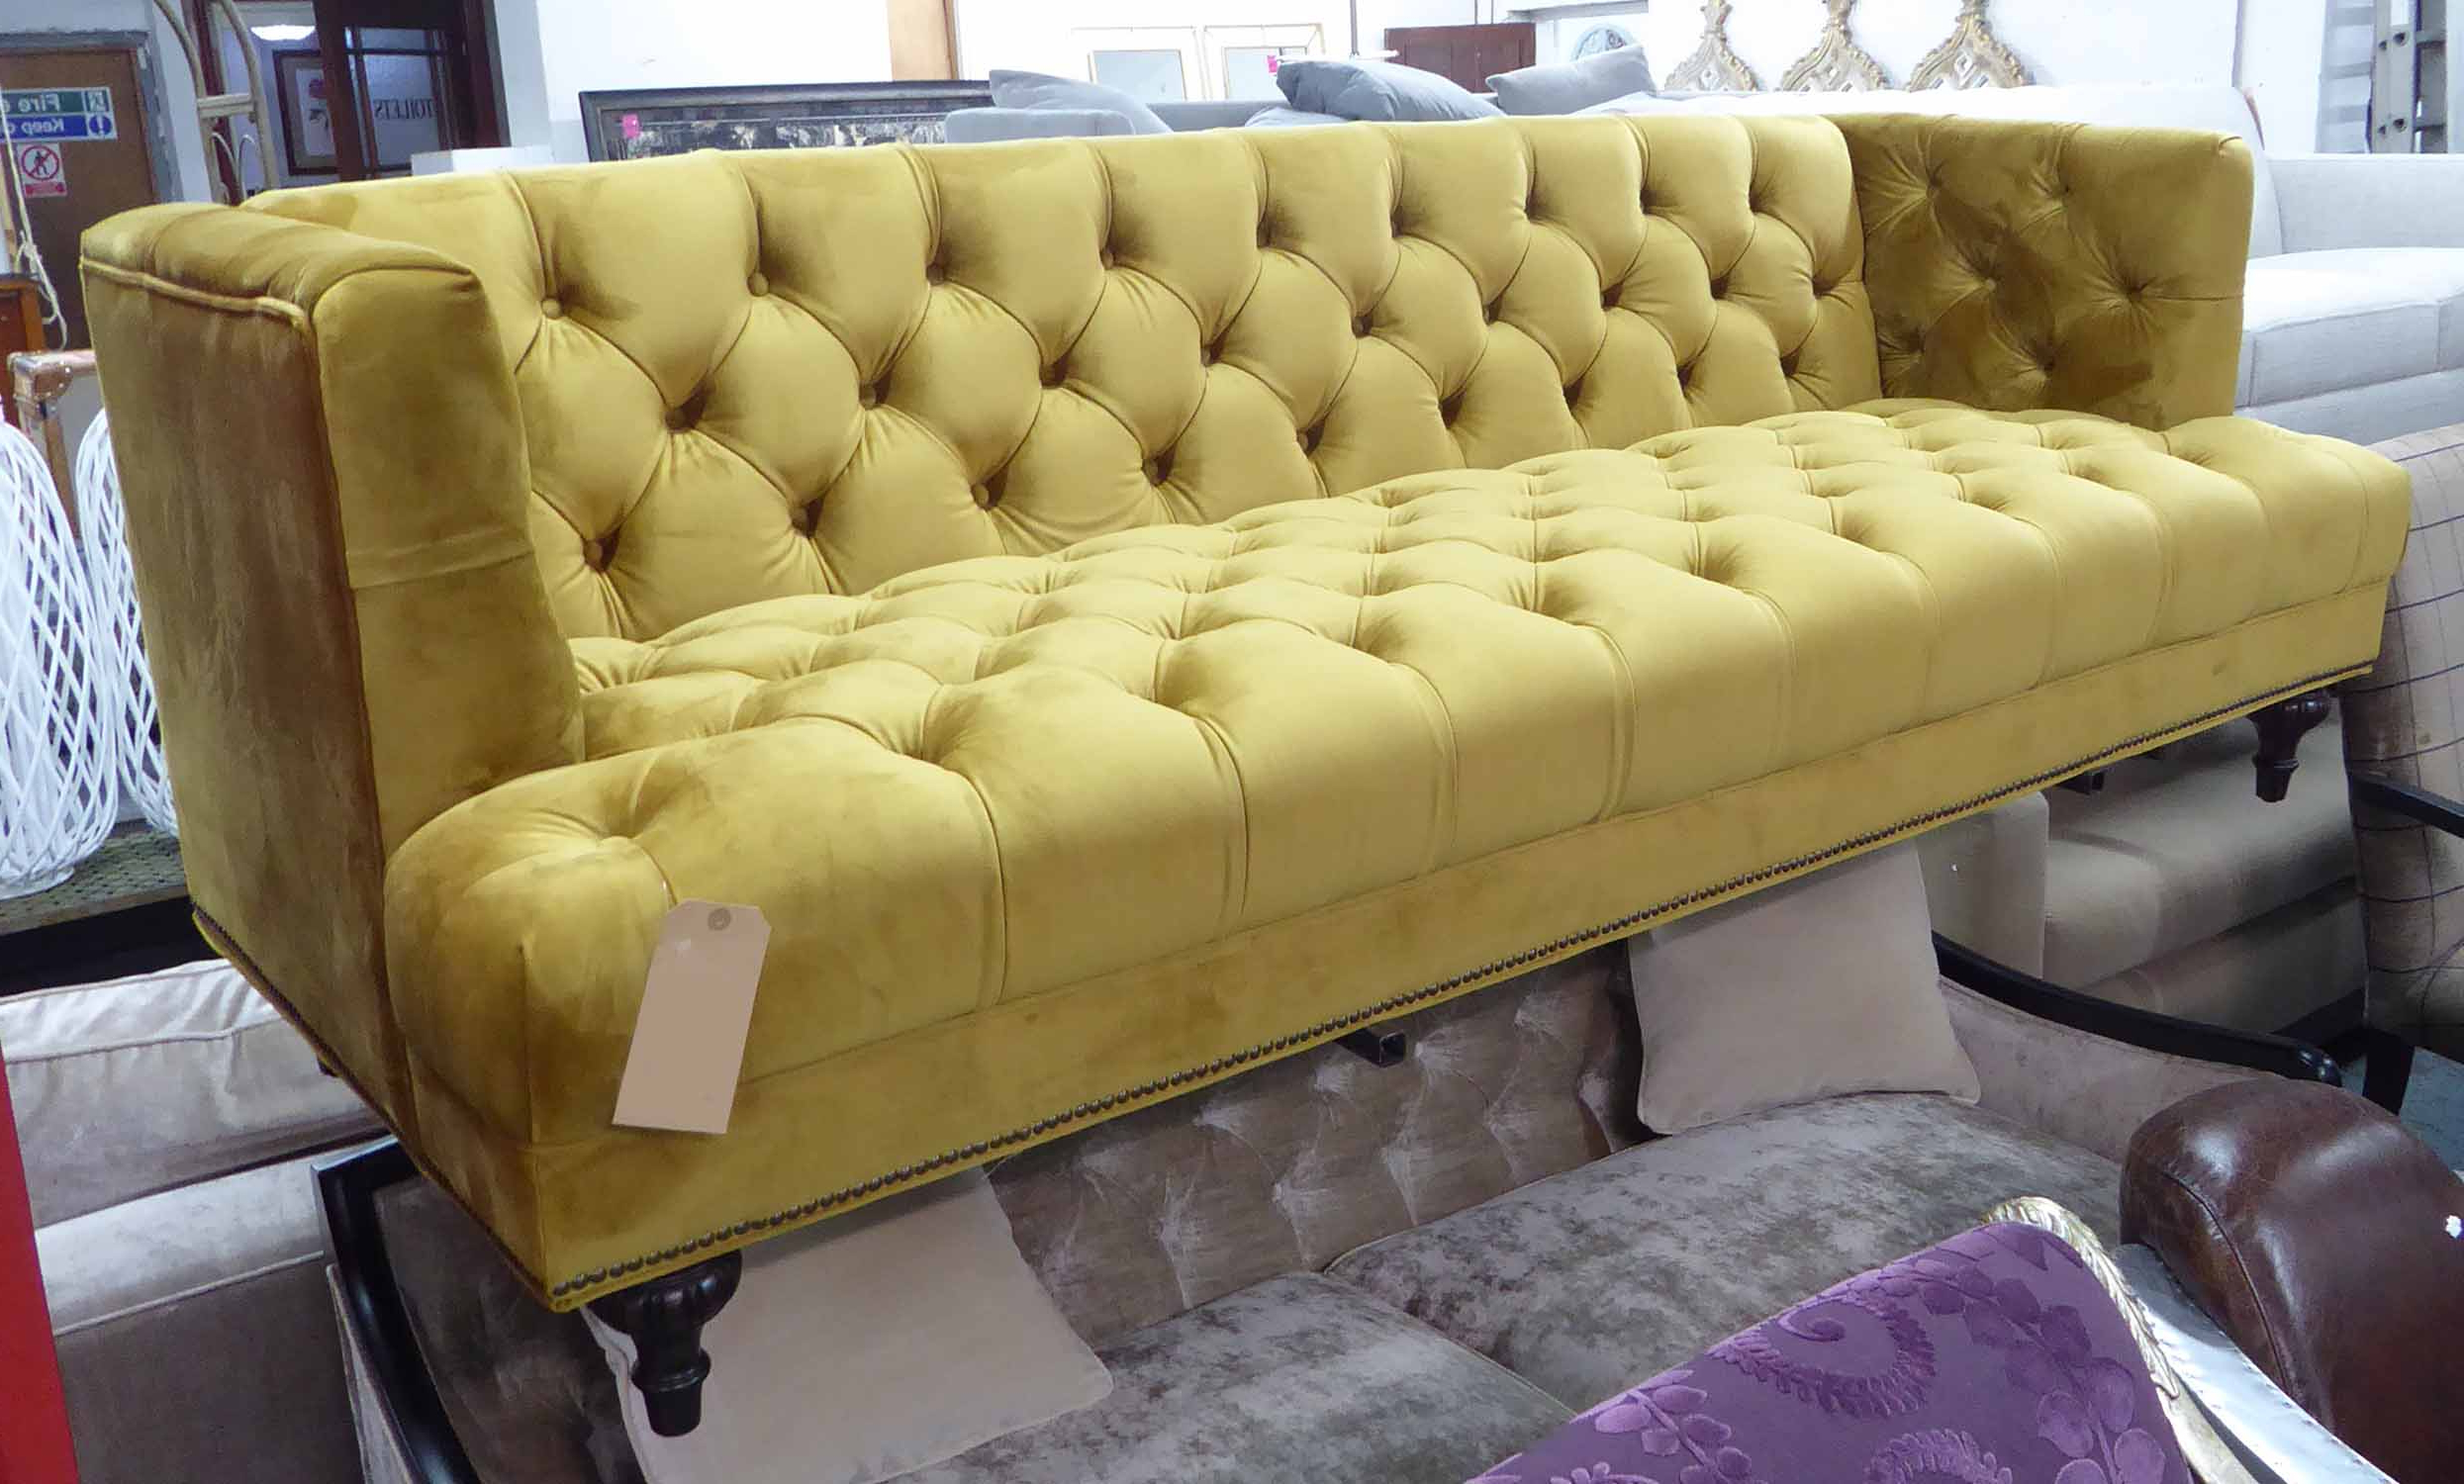 French Seamed Sectional Sofas Oblong Mustard Intended For Preferred Artsome For Coach House Sofa, Mustard Buttoned Finish (View 4 of 25)